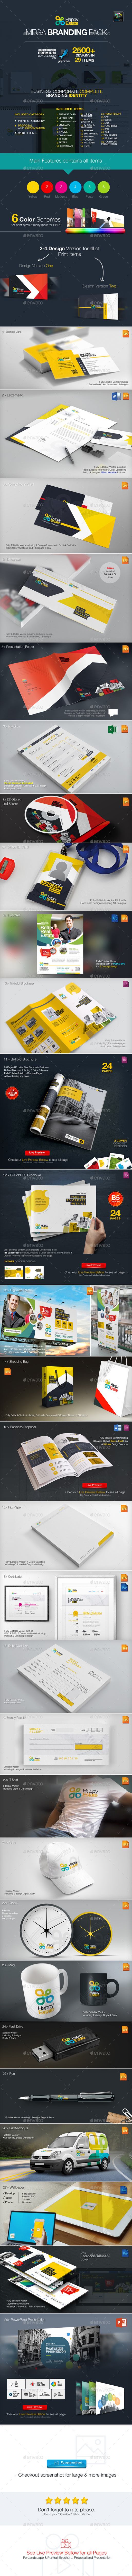 Branding Identity Pack - Stationery Print Templates